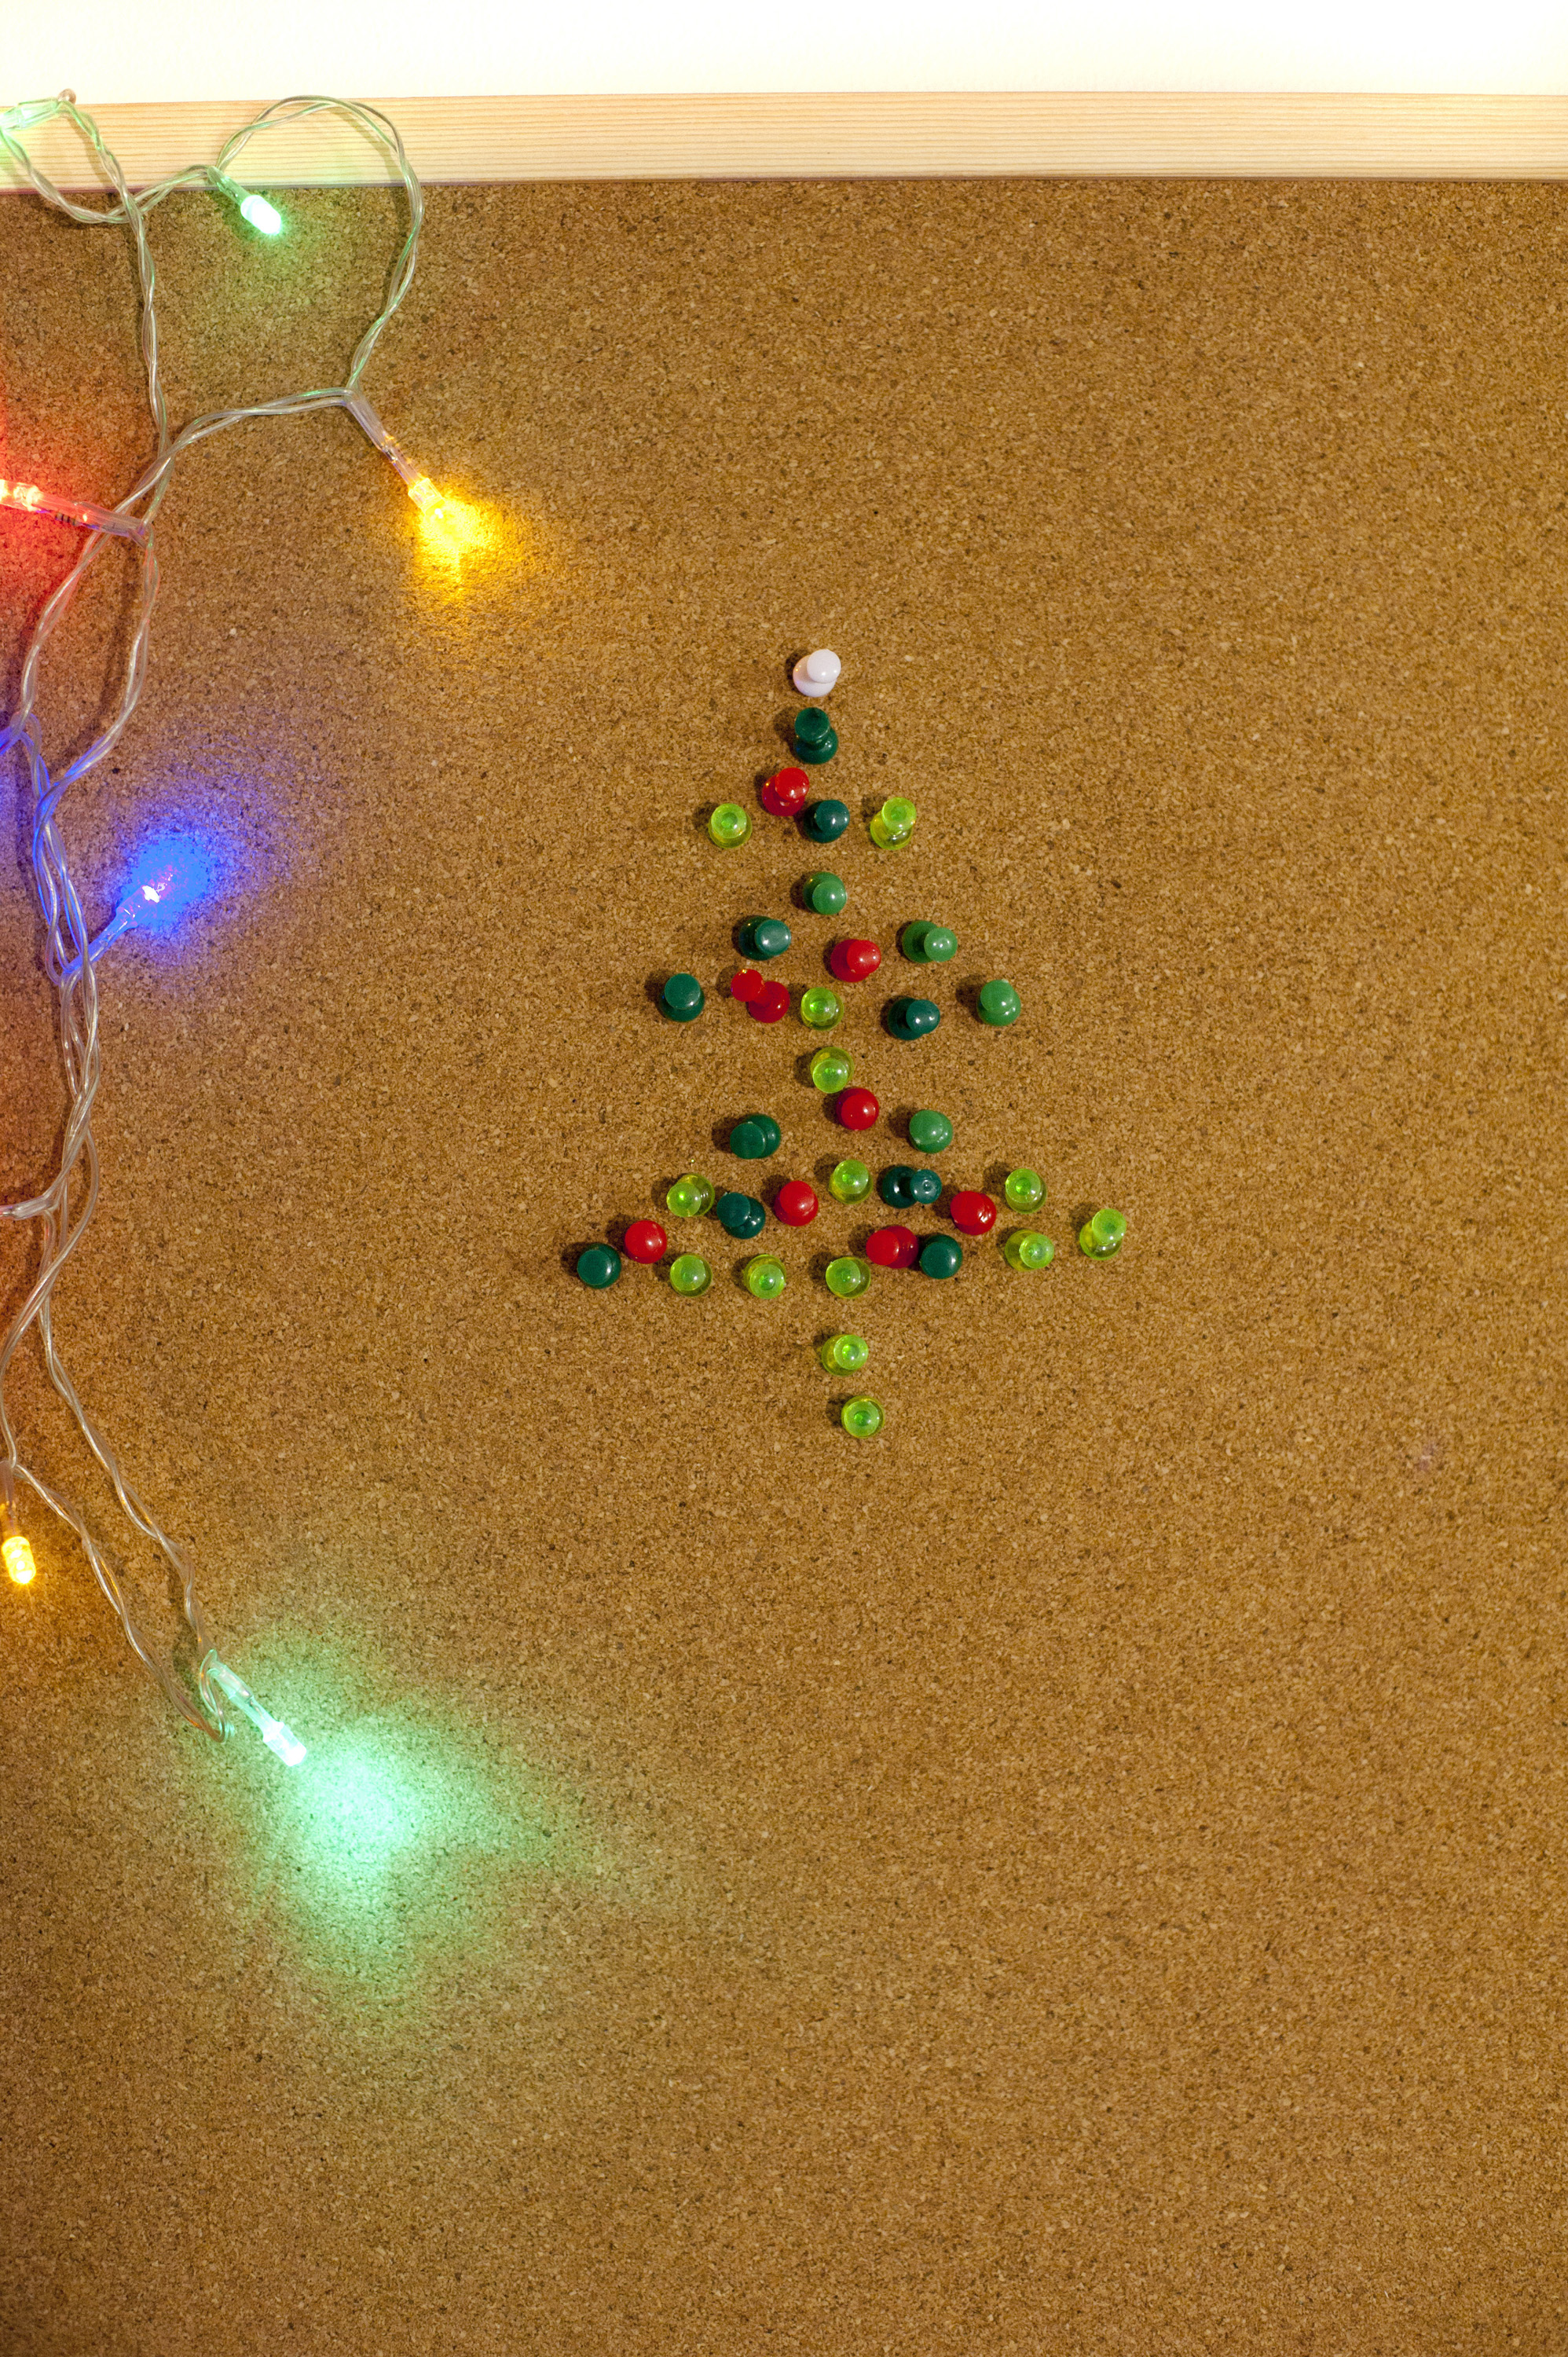 Handmade Christmas tree made of pins, colorful garland